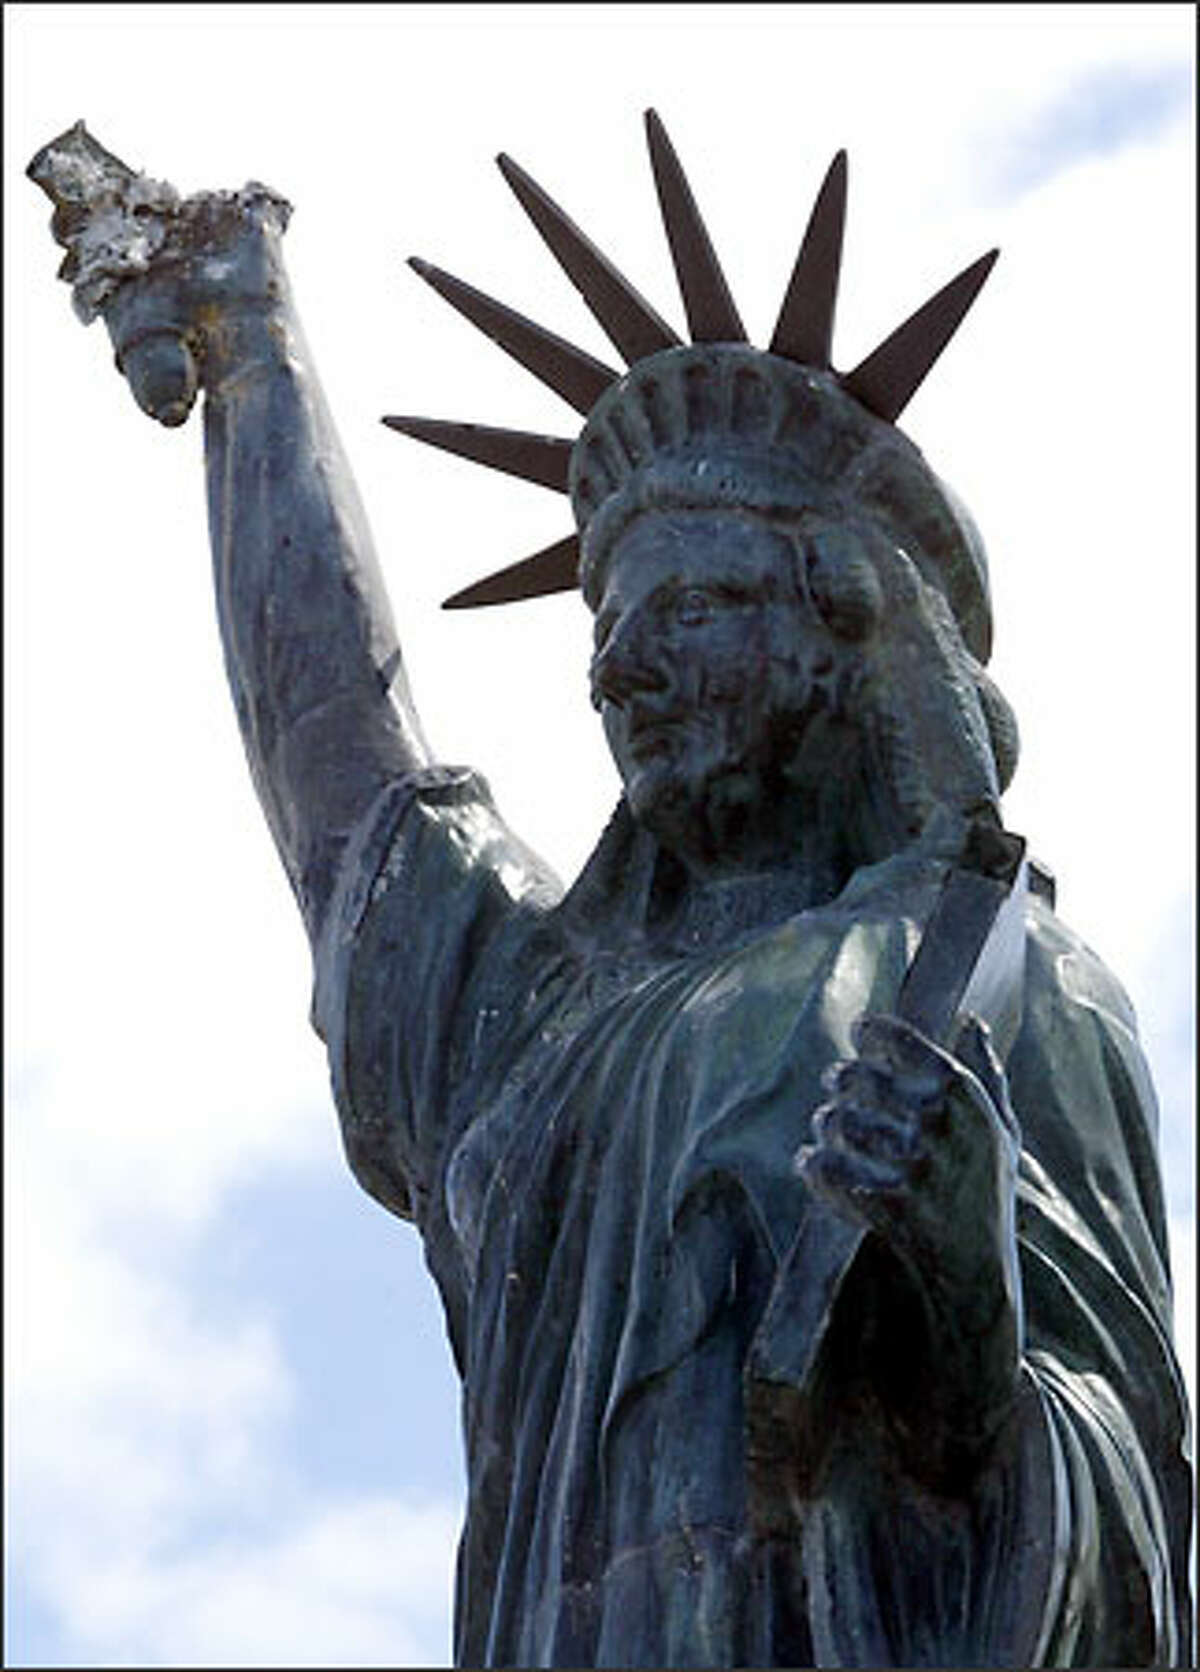 Alki Beach residents fear the statue damage may be hard to repair.